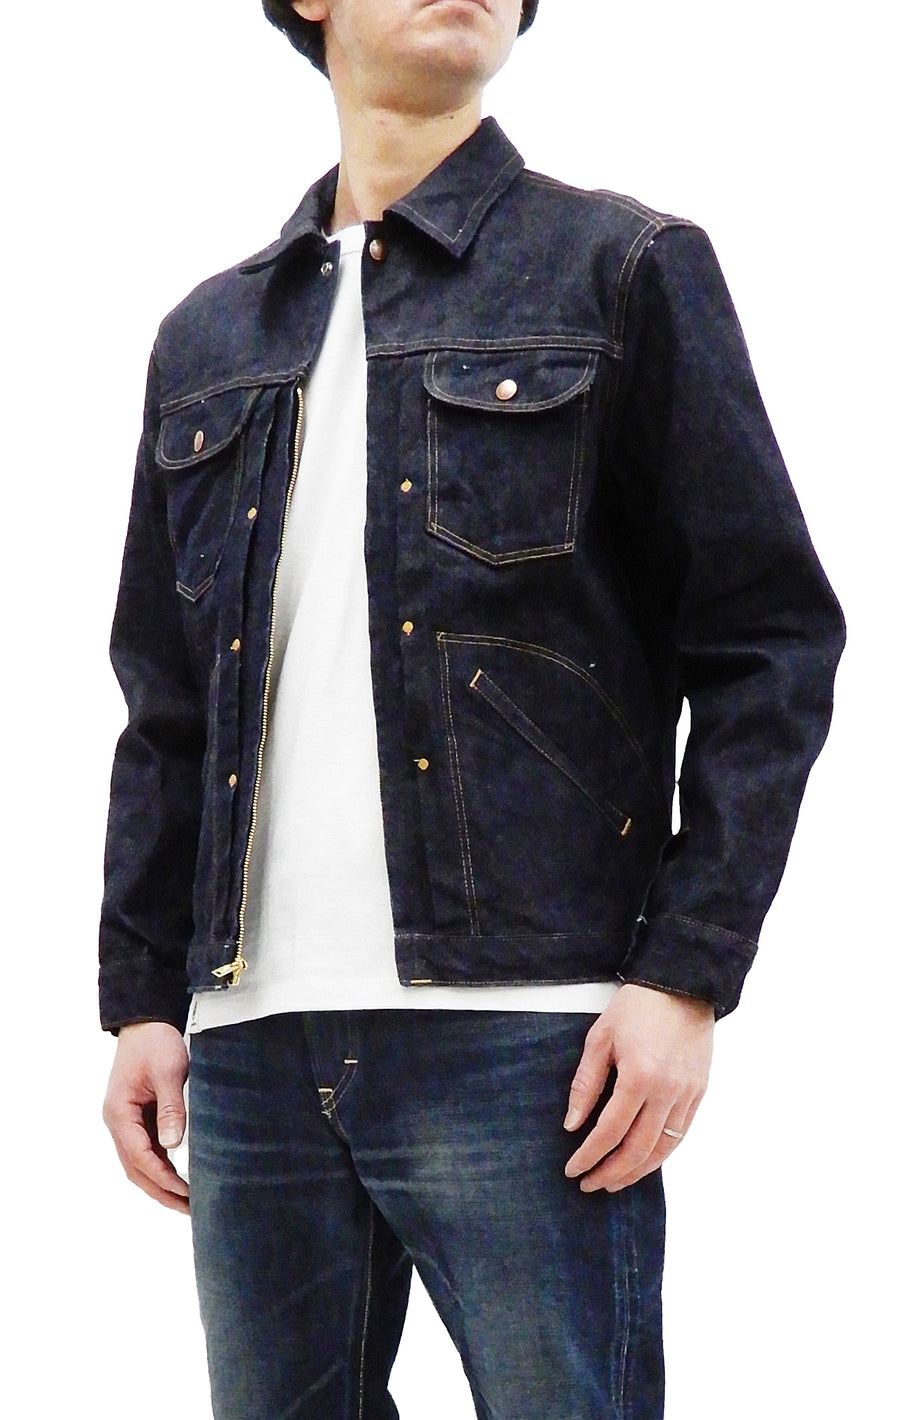 Sugar Cane Zip-up Denim Jacket Men's Jean jacket Wrangler 24MJZ Style SC14841 421 One-washed